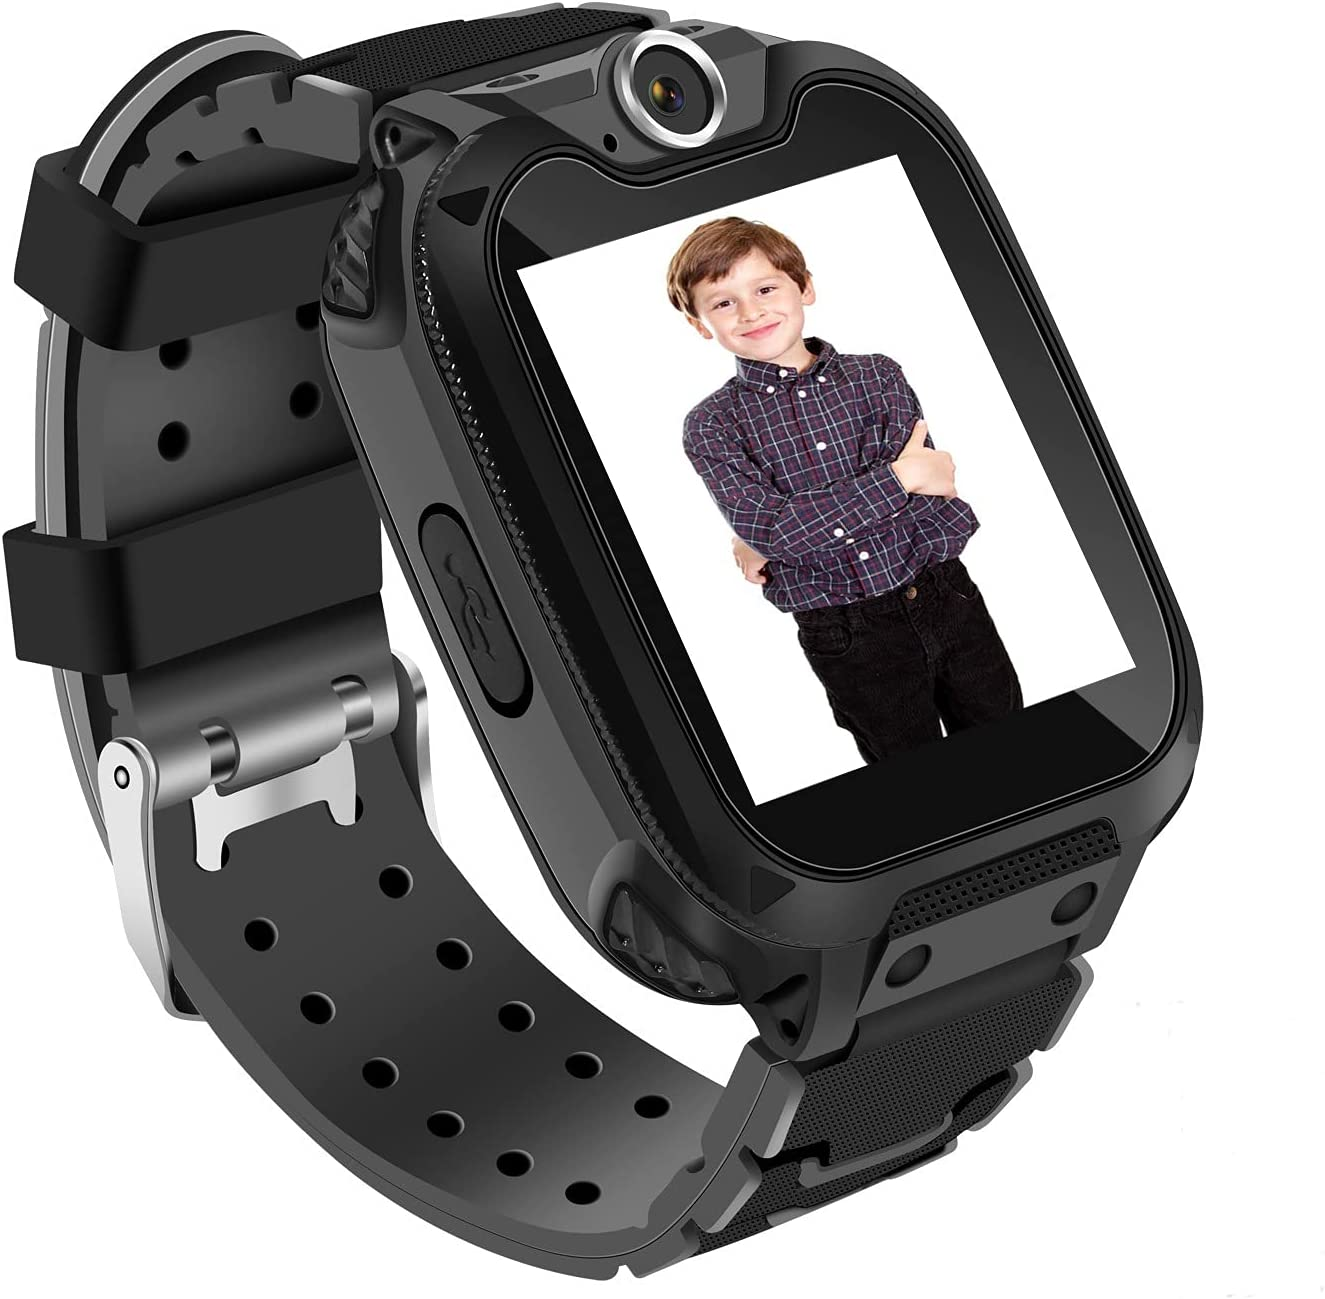 """Kids Smart Watch for Girls Boys with 1GB SD Card,Phone Call Games Music Camera Alarm Recorder SOS,1.54""""Color Touch Screen Smartwatch for 3-13 Years Children Birthday Gift"""